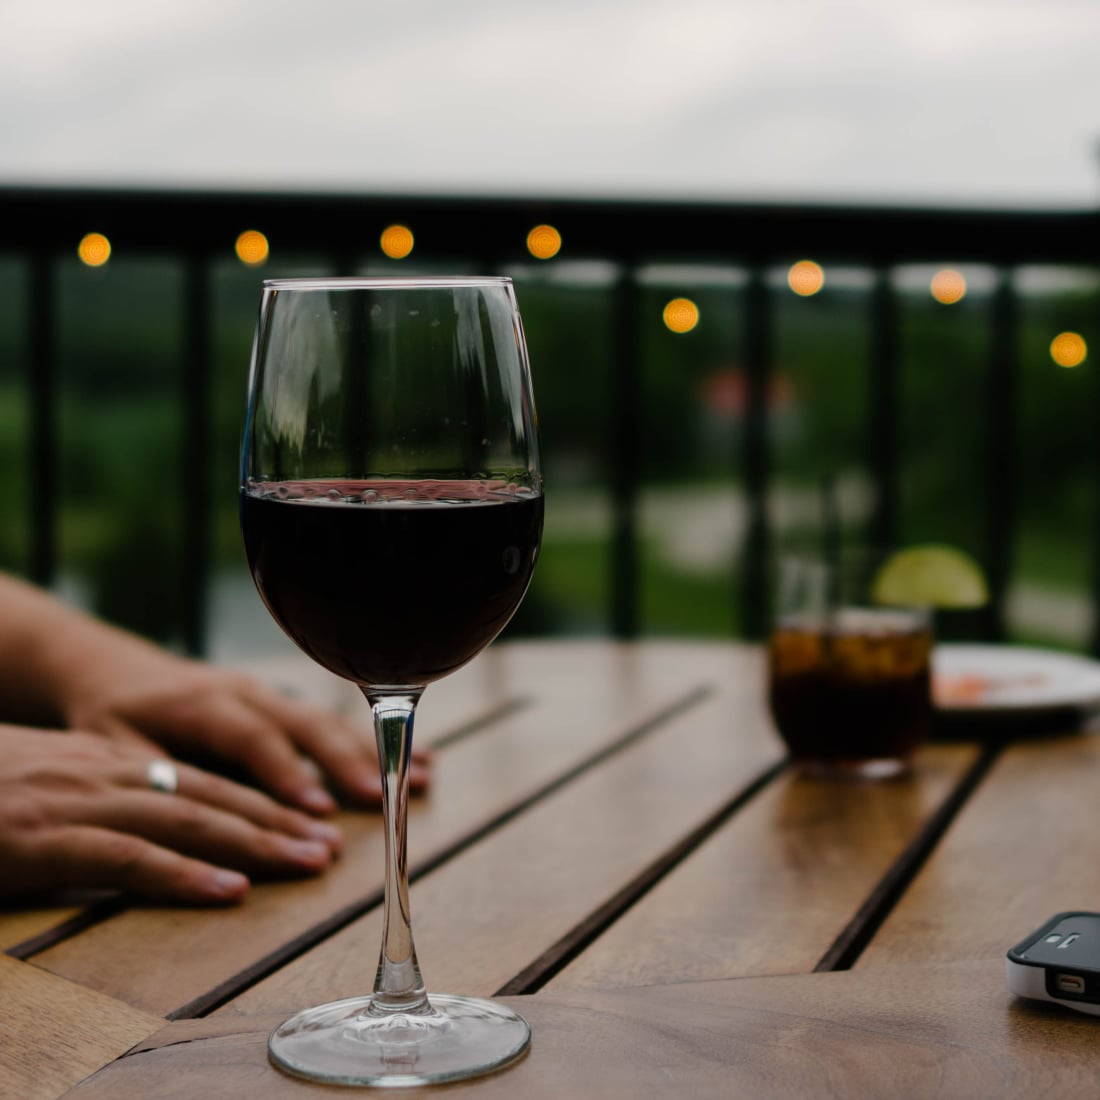 Best Ways to Remove a Red Wine Stain